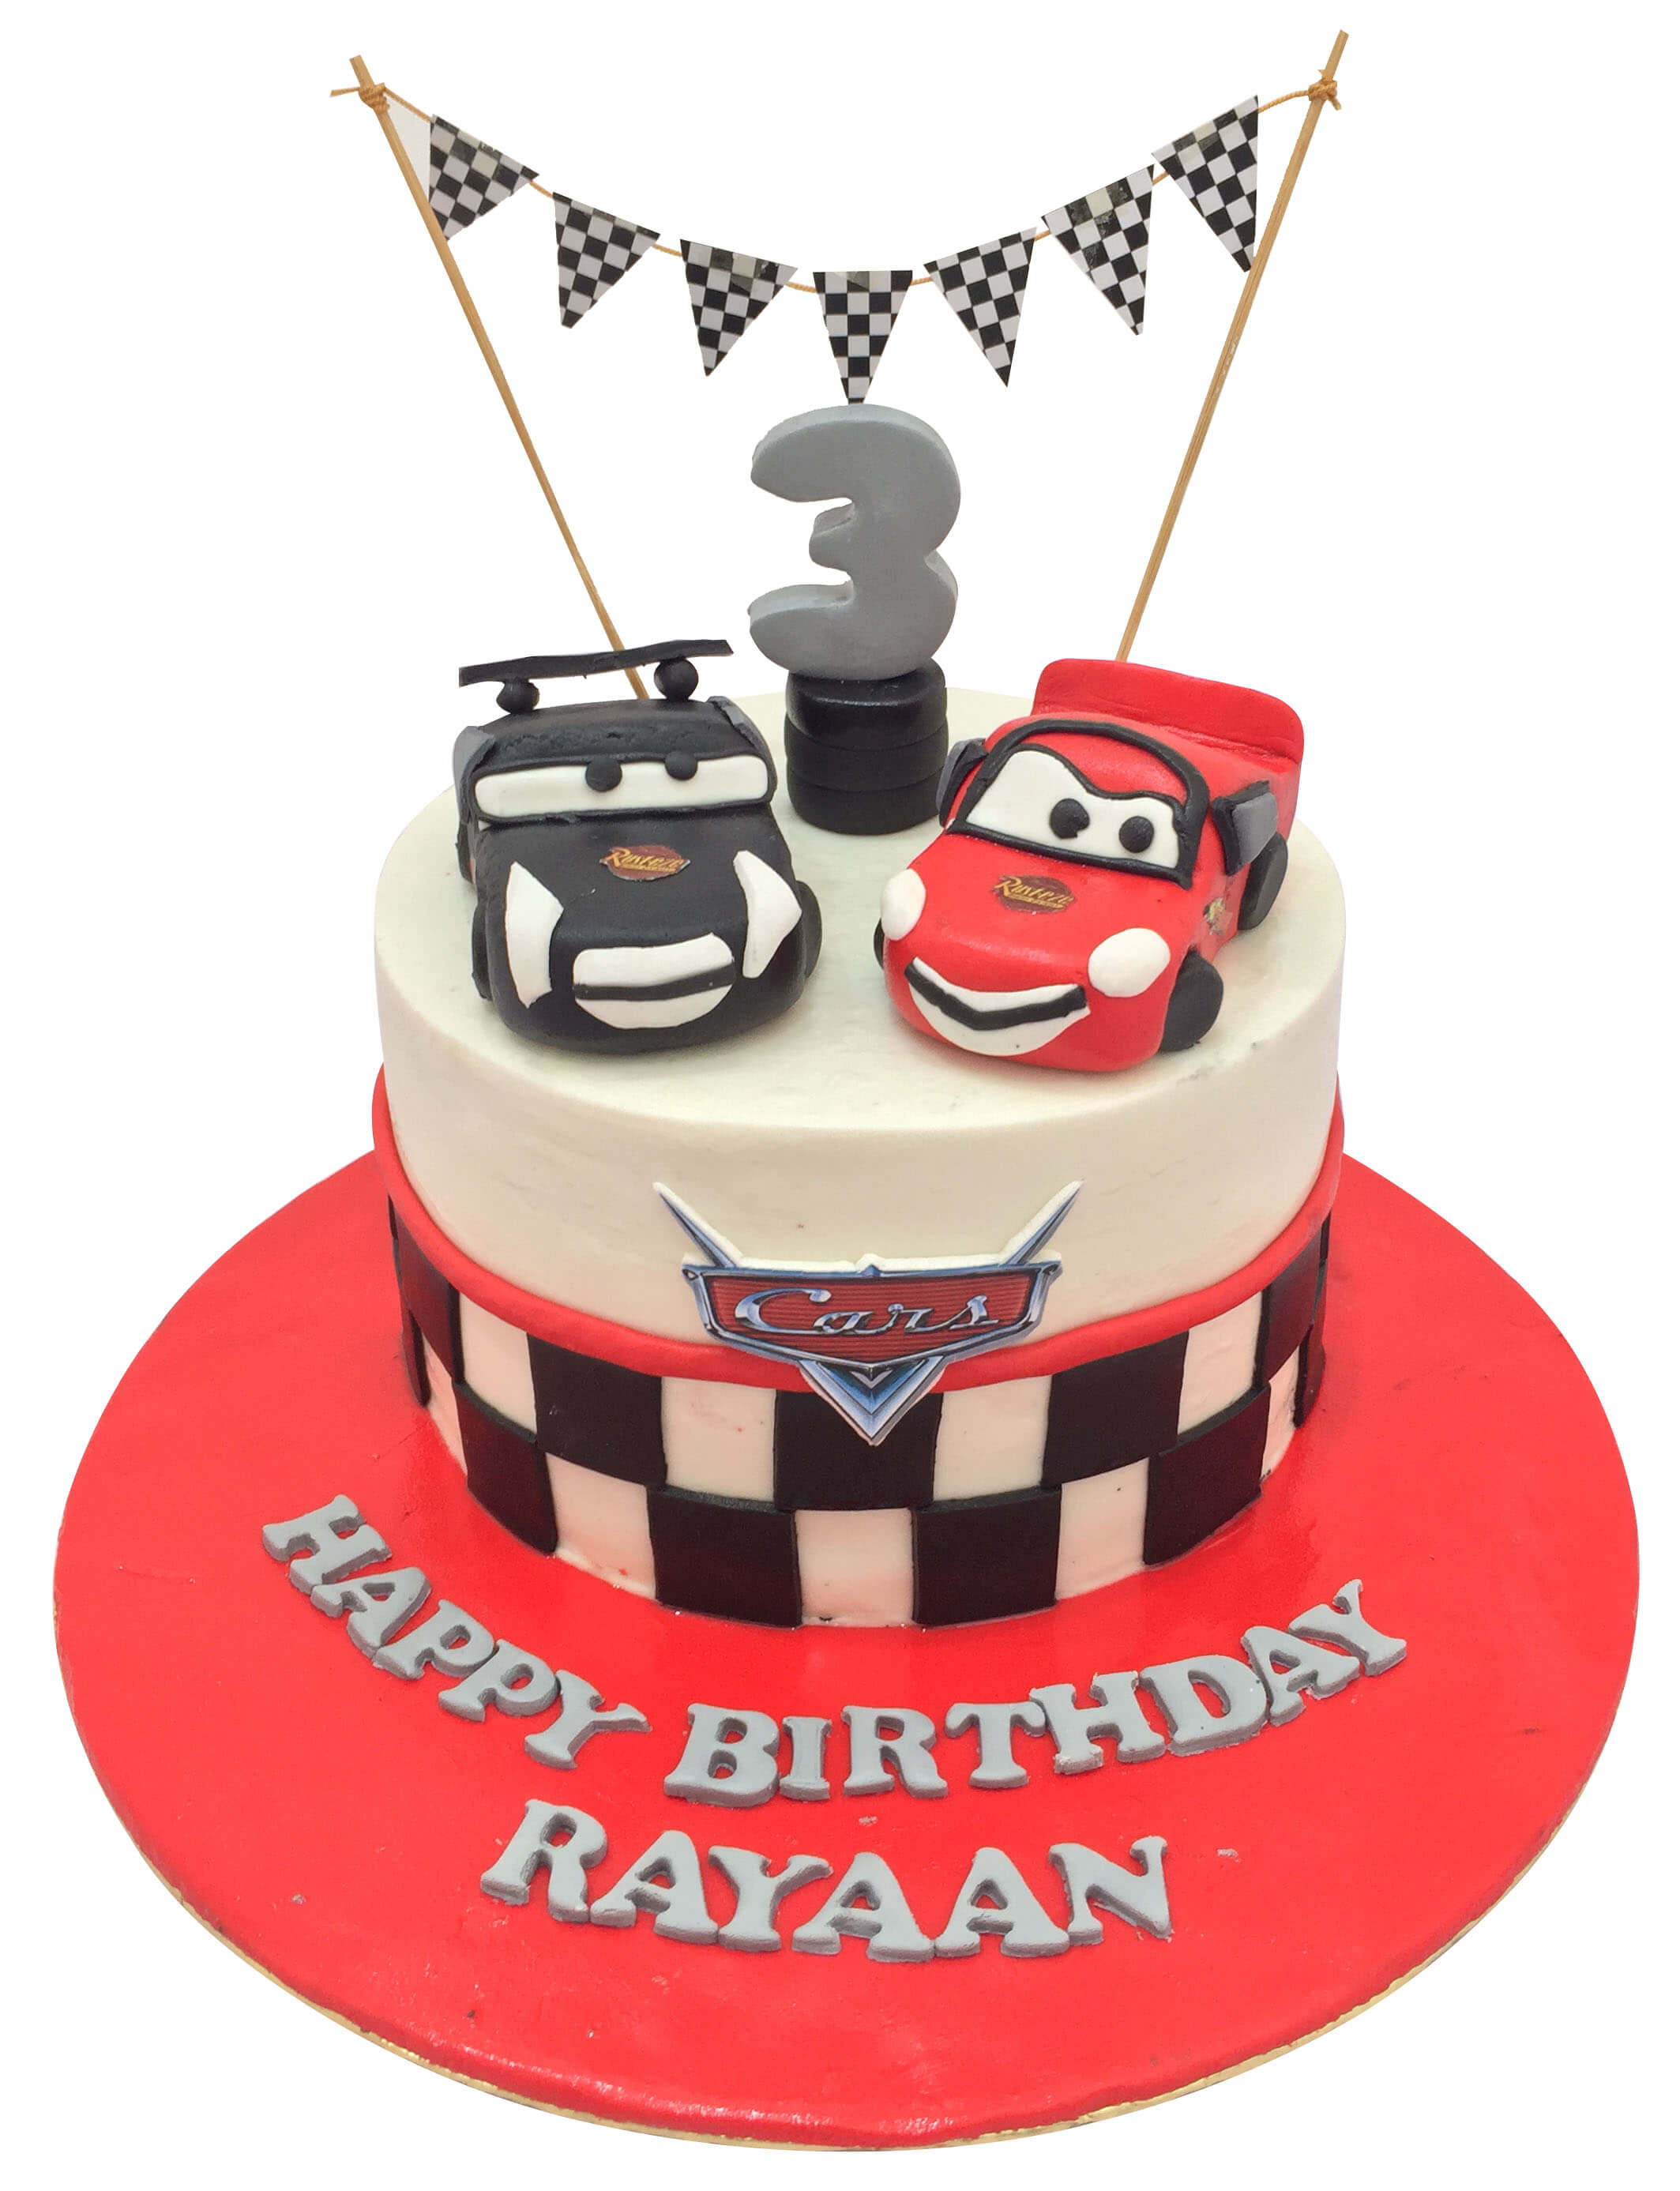 Phenomenal Race Car Birthday Cake Car Cakes For Adults Car Cake Design For Boy Funny Birthday Cards Online Elaedamsfinfo